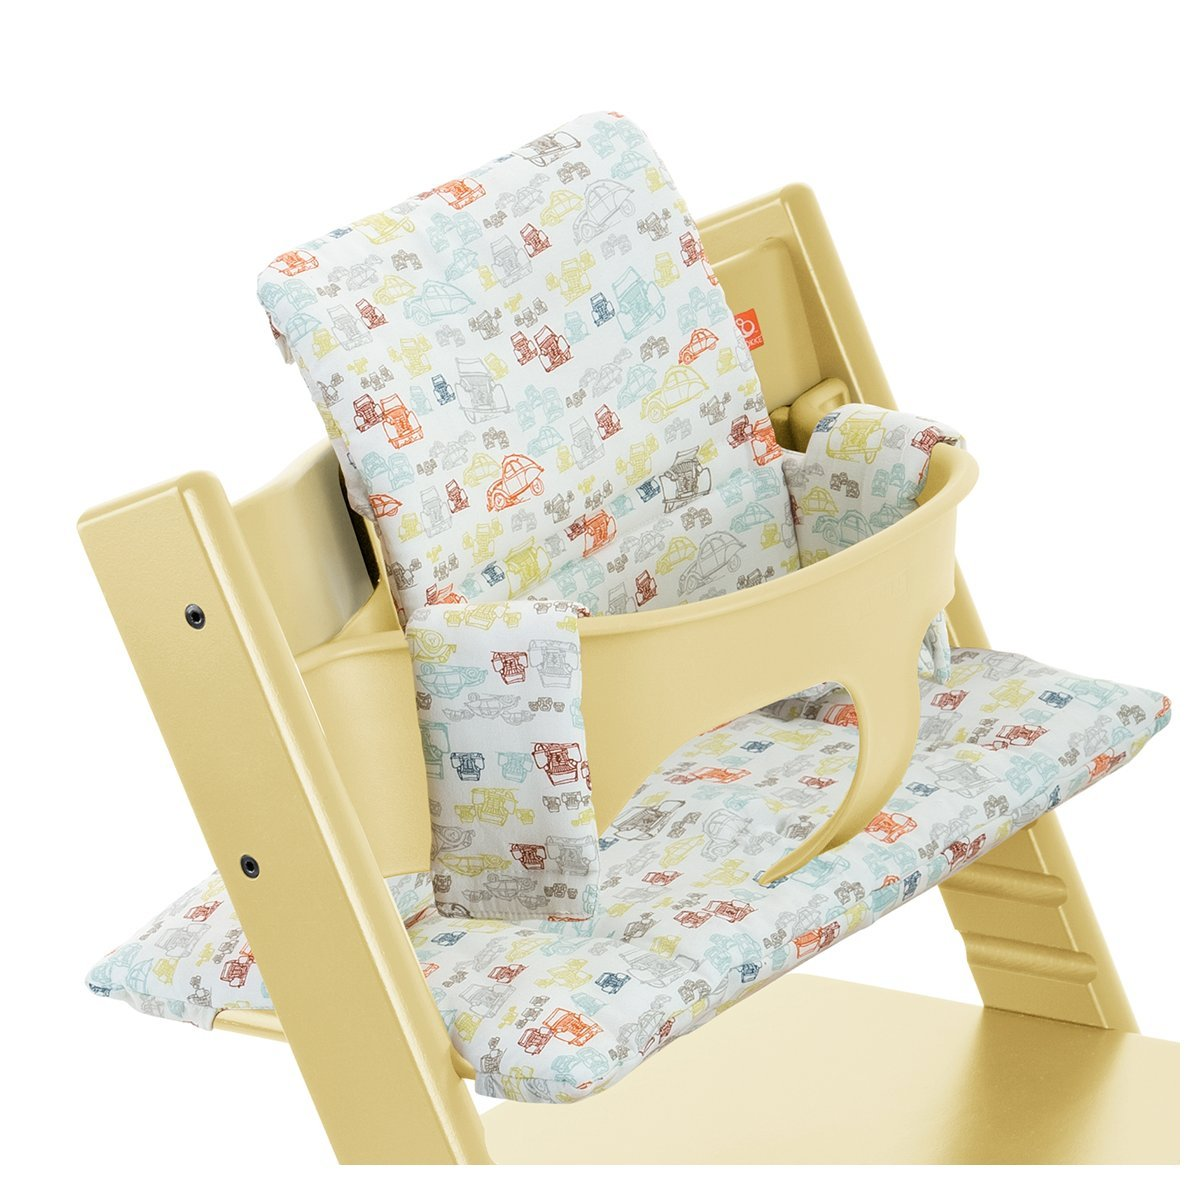 Stokke Tripp Trapp Cushion, Retro Car